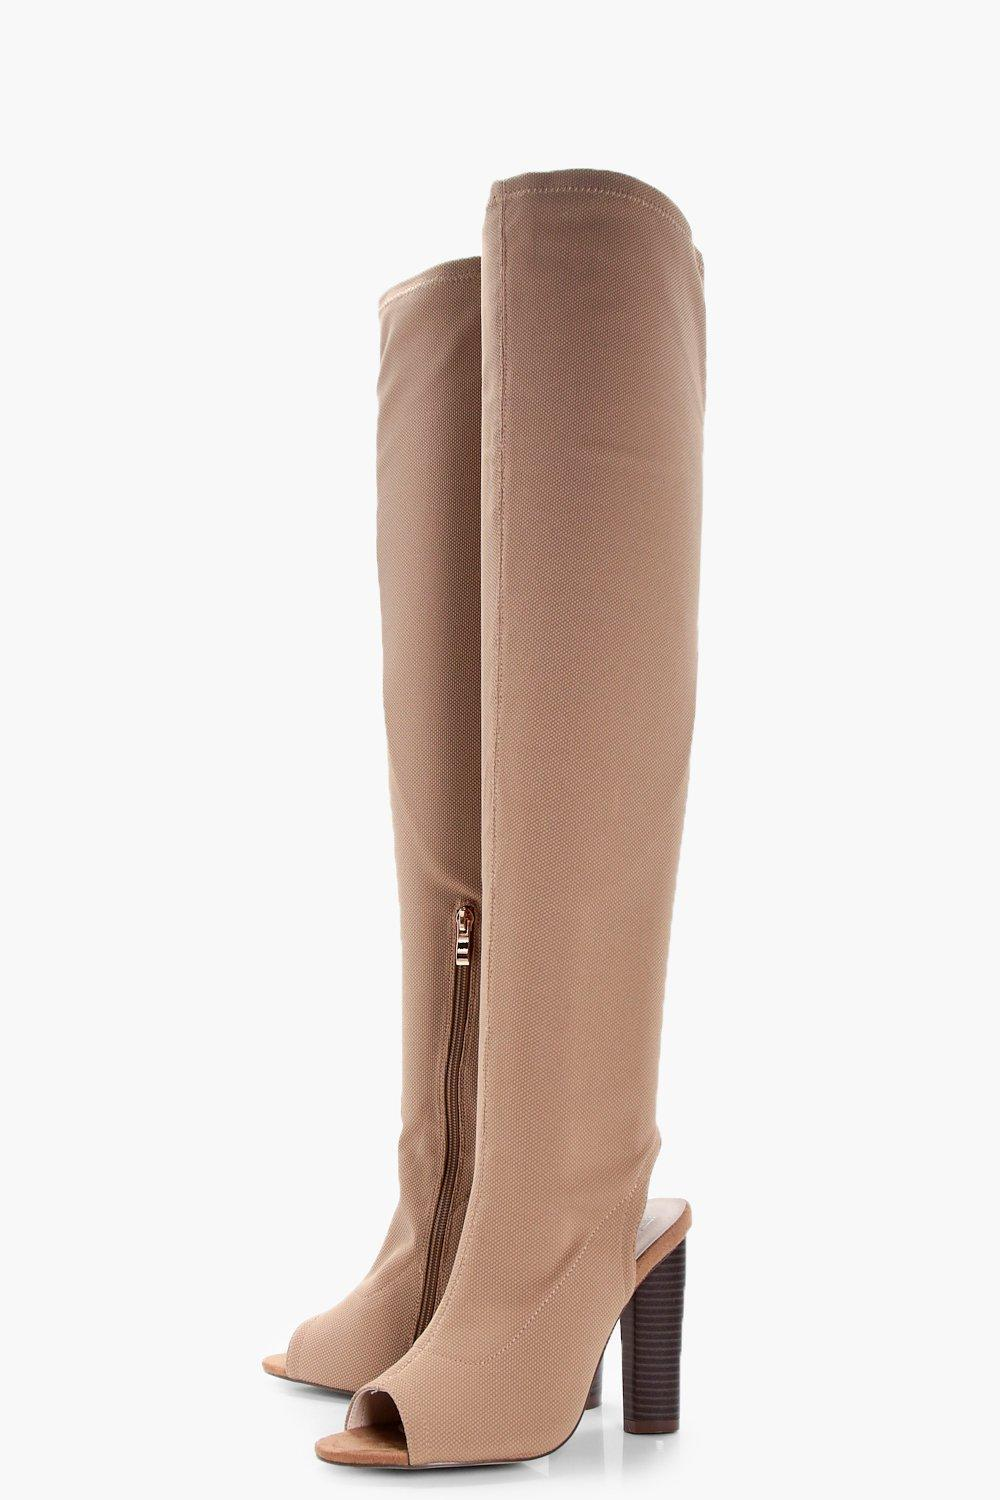 Boohoo Synthetic Libby Peeptoe Sock Thigh High Boots in Beige (Natural)